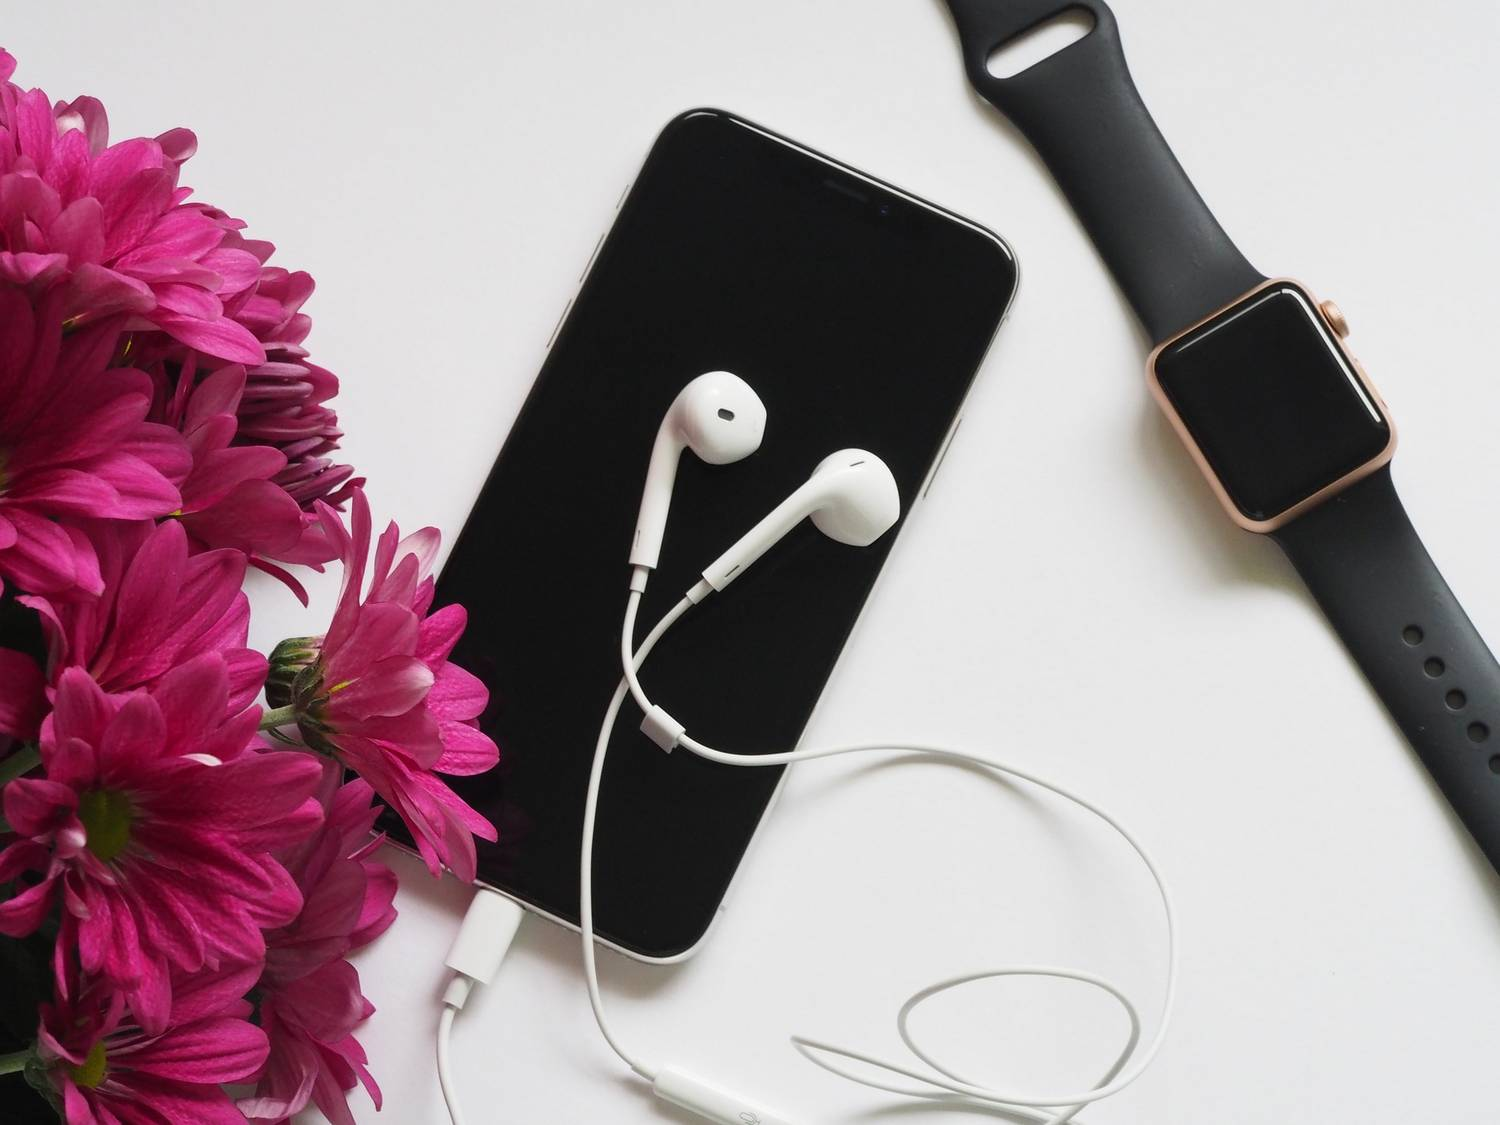 What accessories for the phone are worth buying